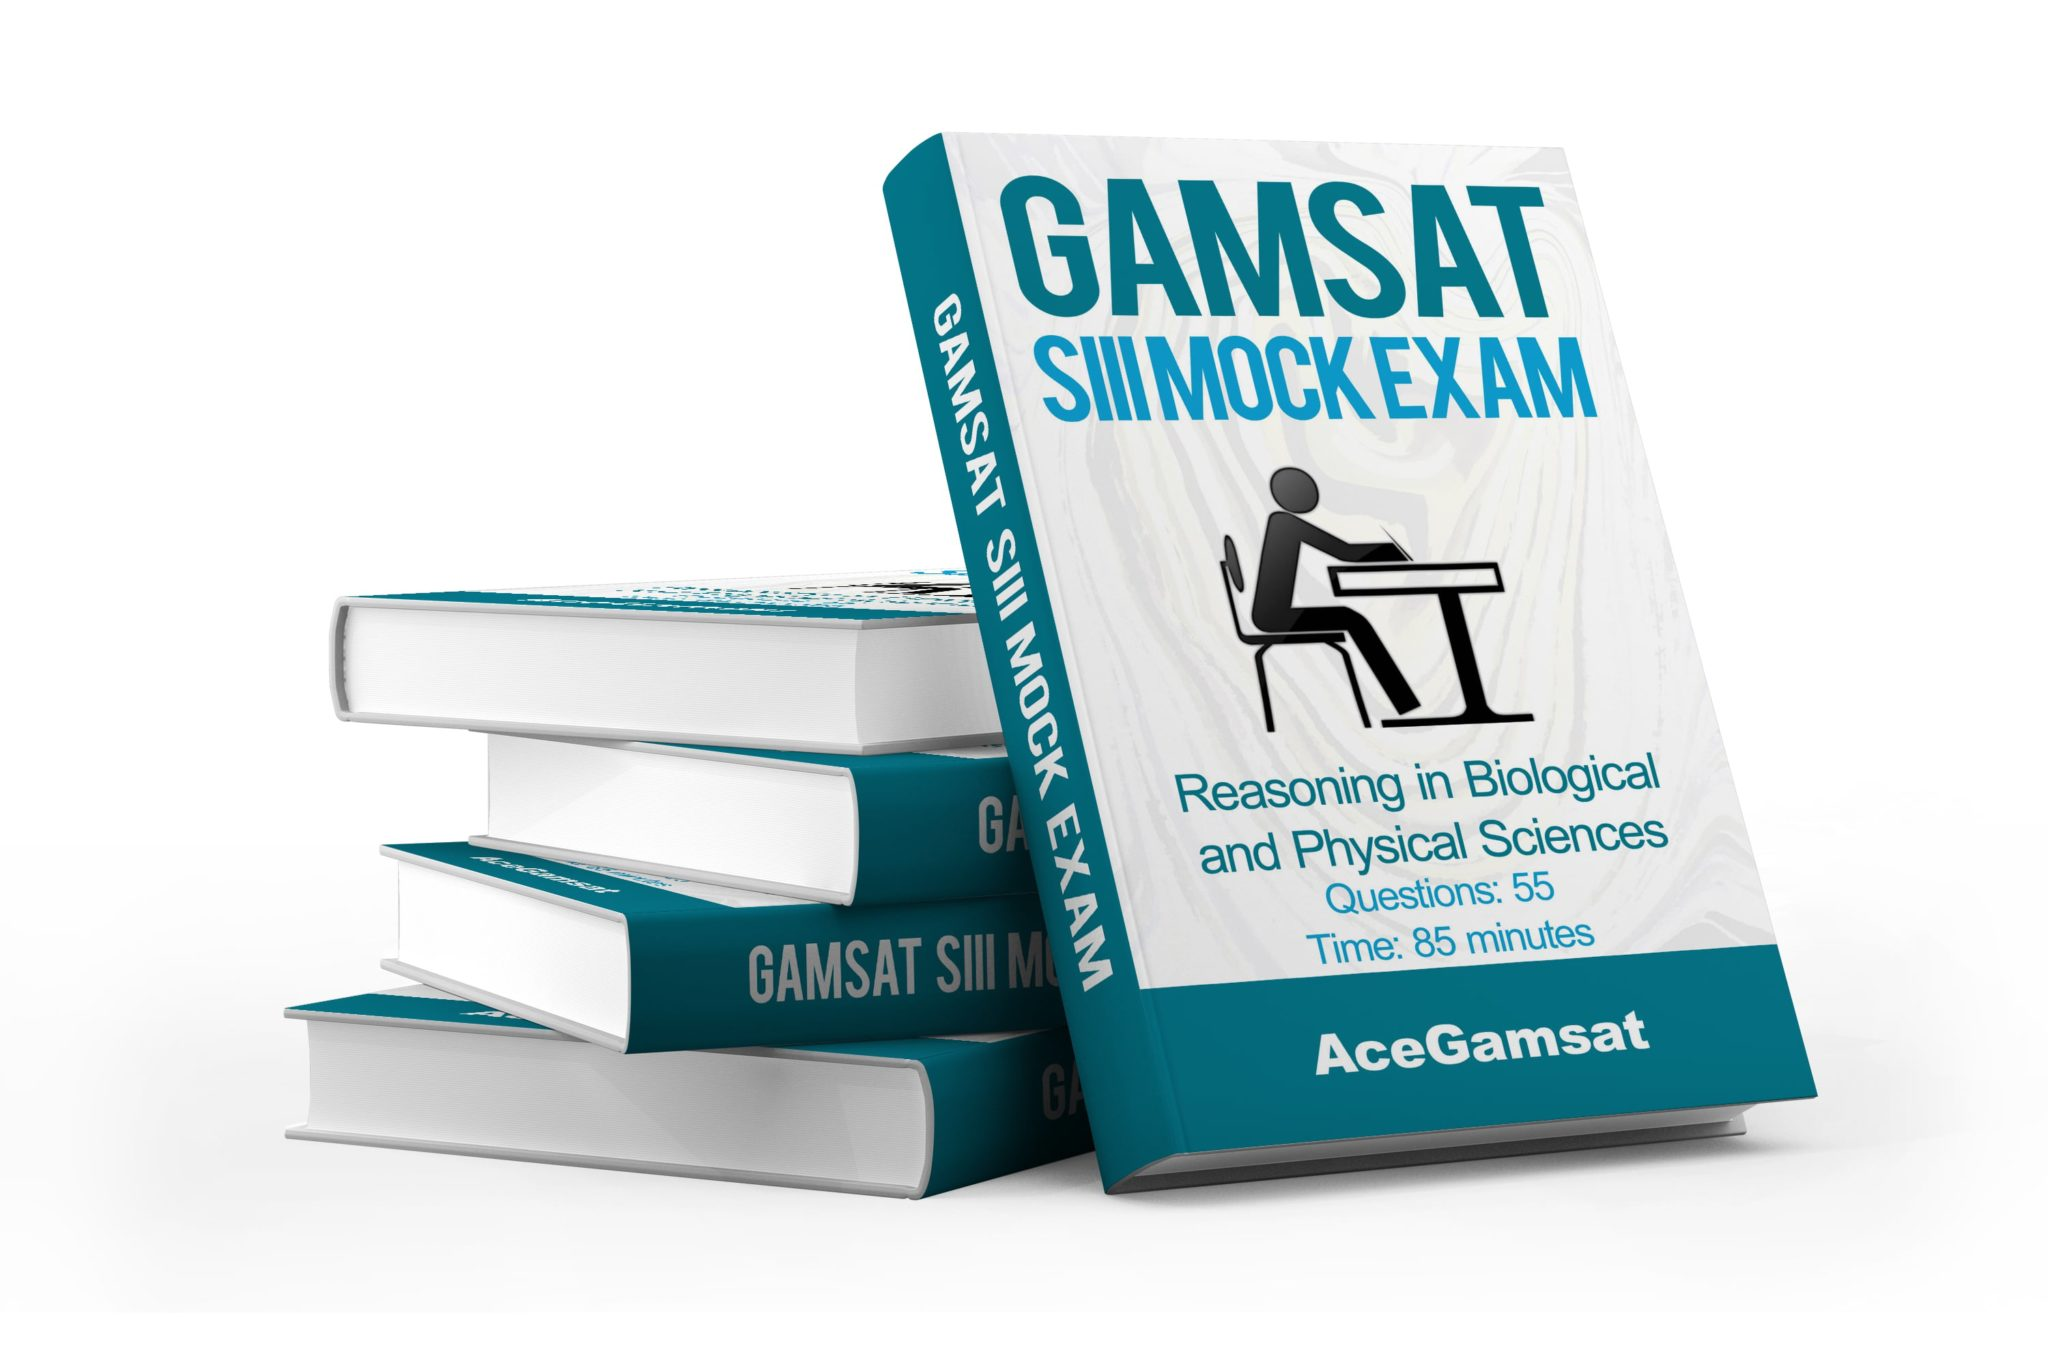 how long is the gamsat